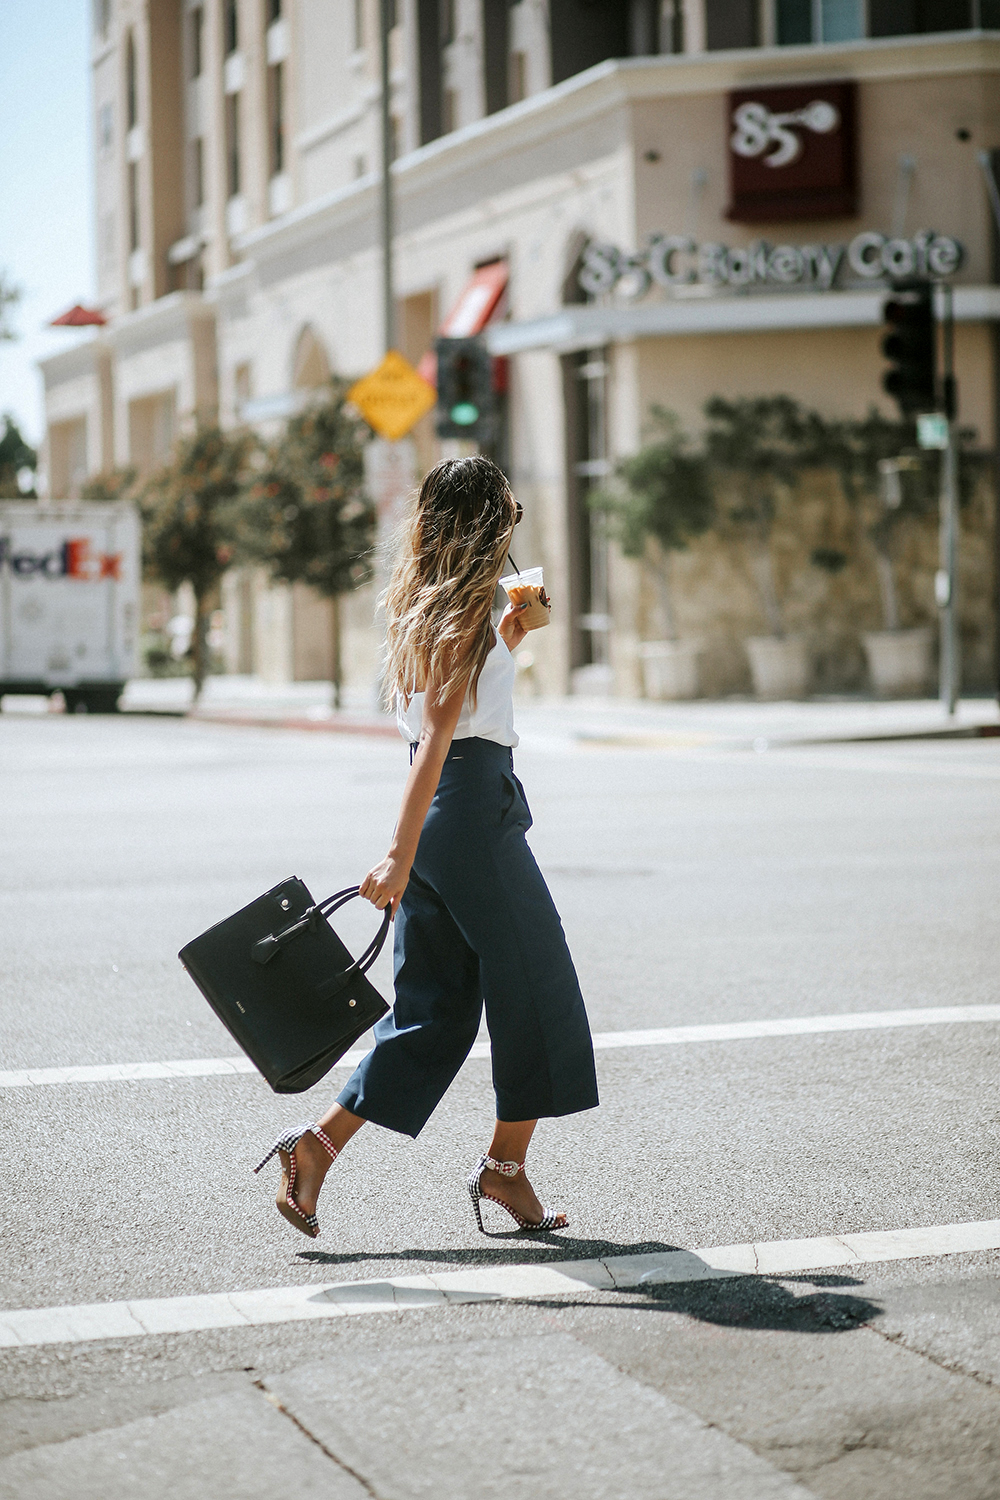 amaro fashion, stuck in a rut, motivation, inspiration, tips, melrodstyle, street style, ootd, outfit, fashion, lifestyle, blogger style, latina blogger, la blogger, hispanic blogger, mexican blogger